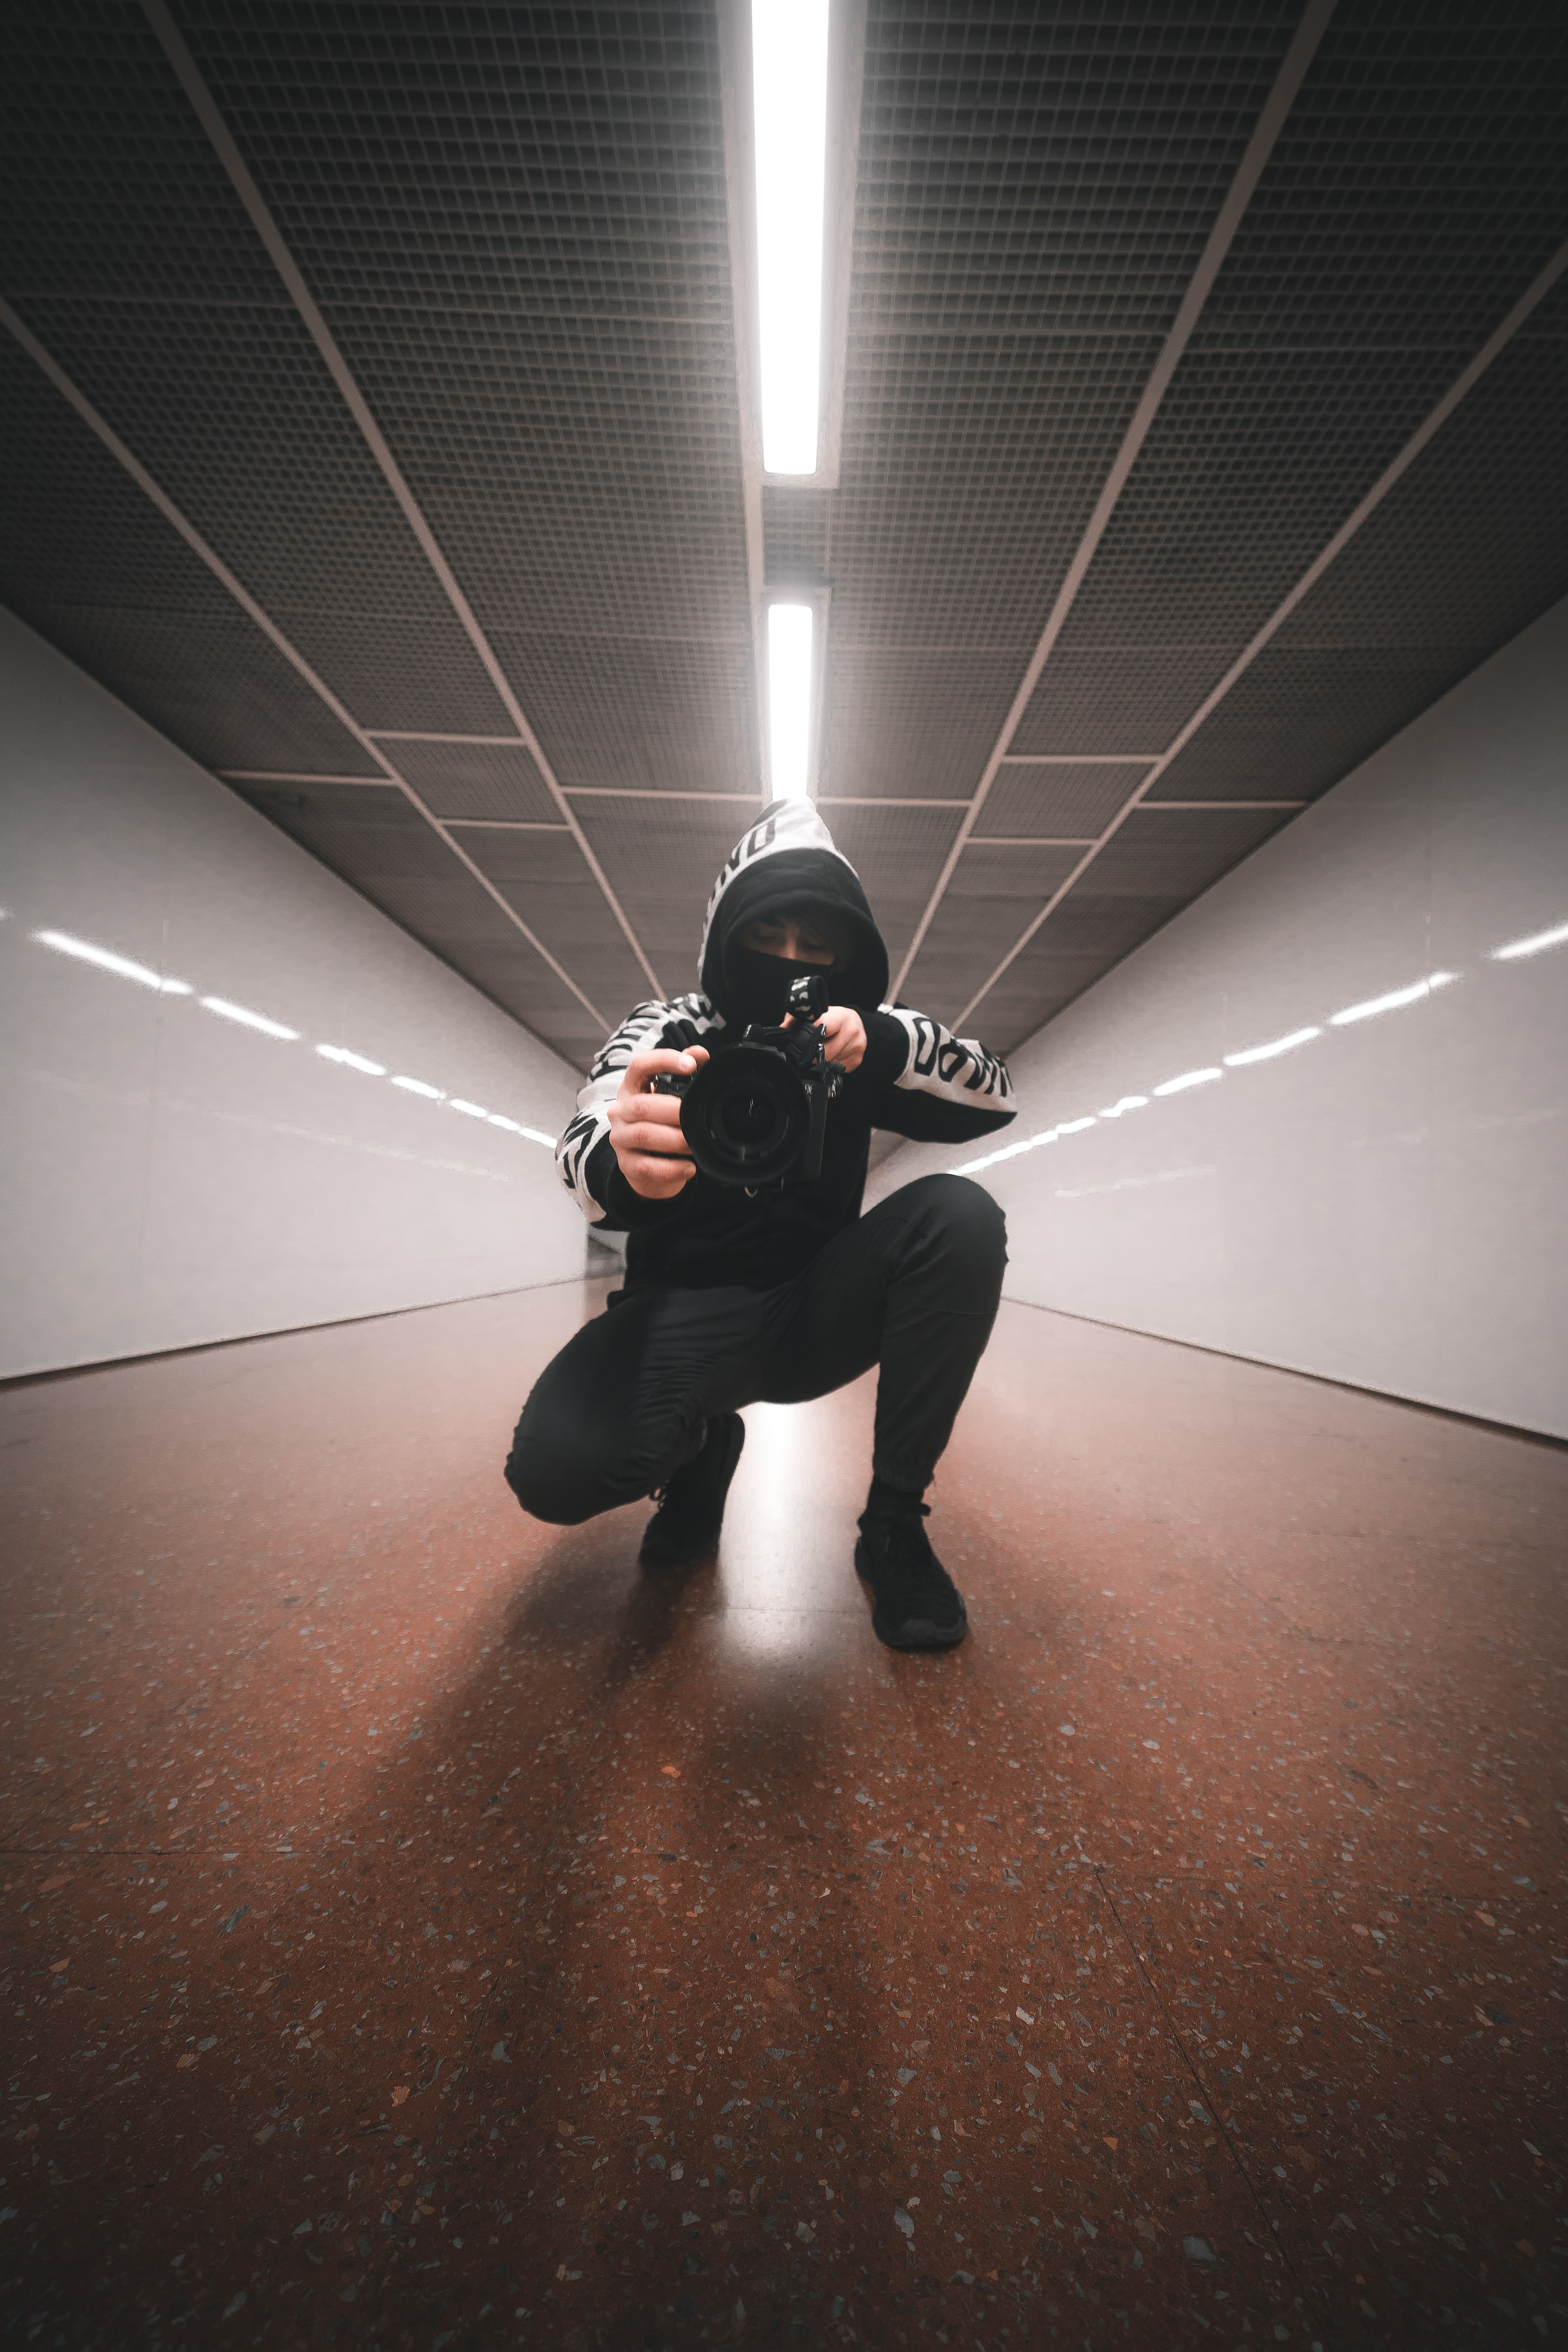 118515 Screensavers and Wallpapers Lens for phone. Download Miscellanea, Miscellaneous, Human, Person, Lens, Photographer, Camera, Tunnel, Hood pictures for free